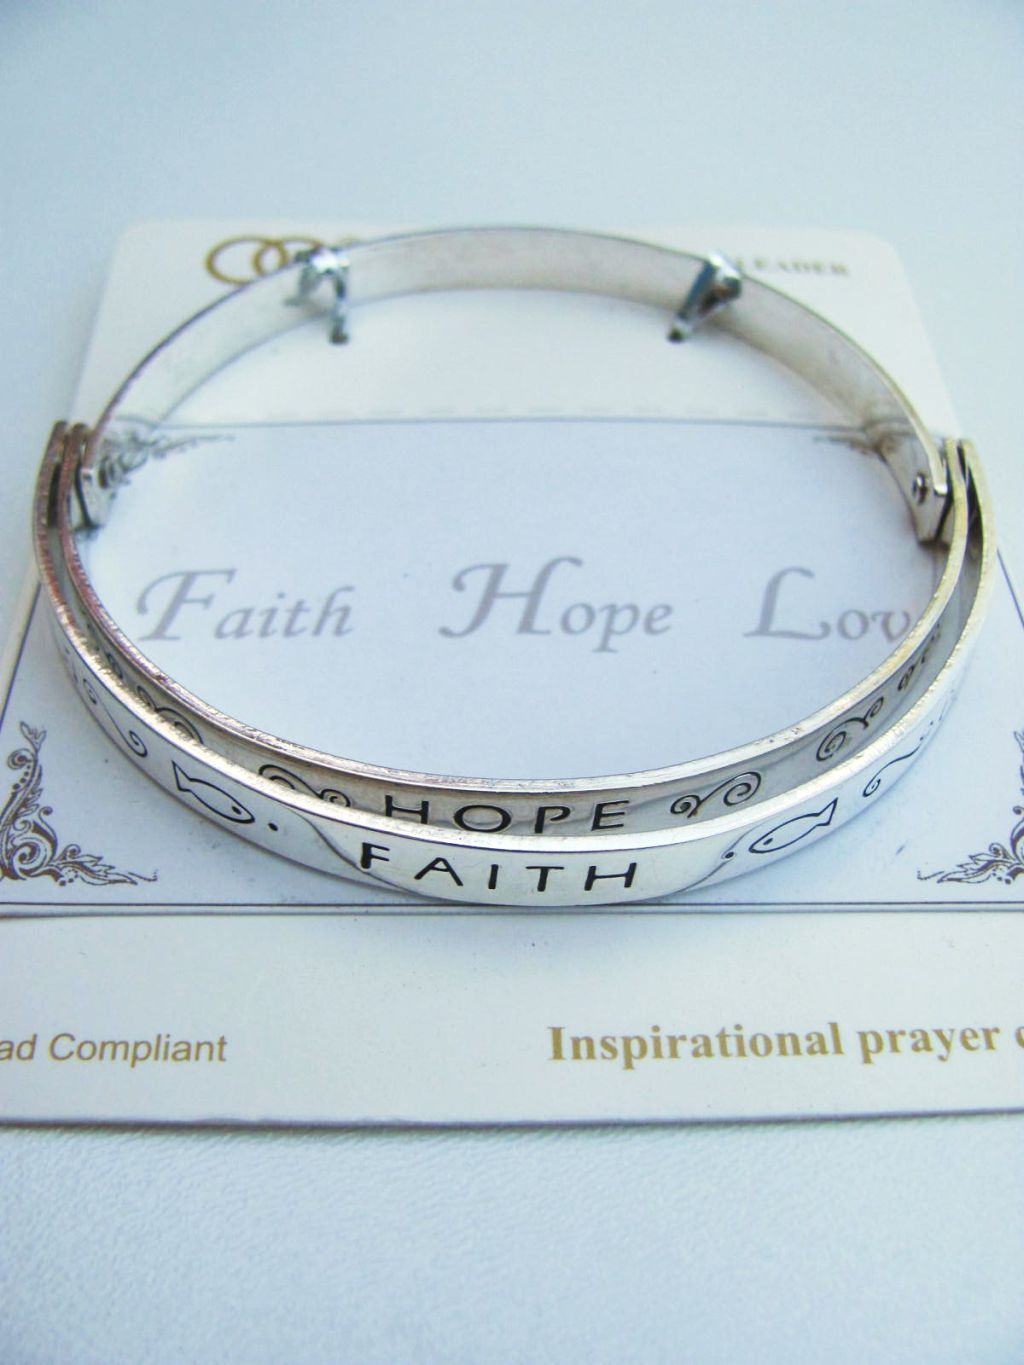 Faith Hope Love Inspirational Message Bangle Bracelet, Contemporary Style